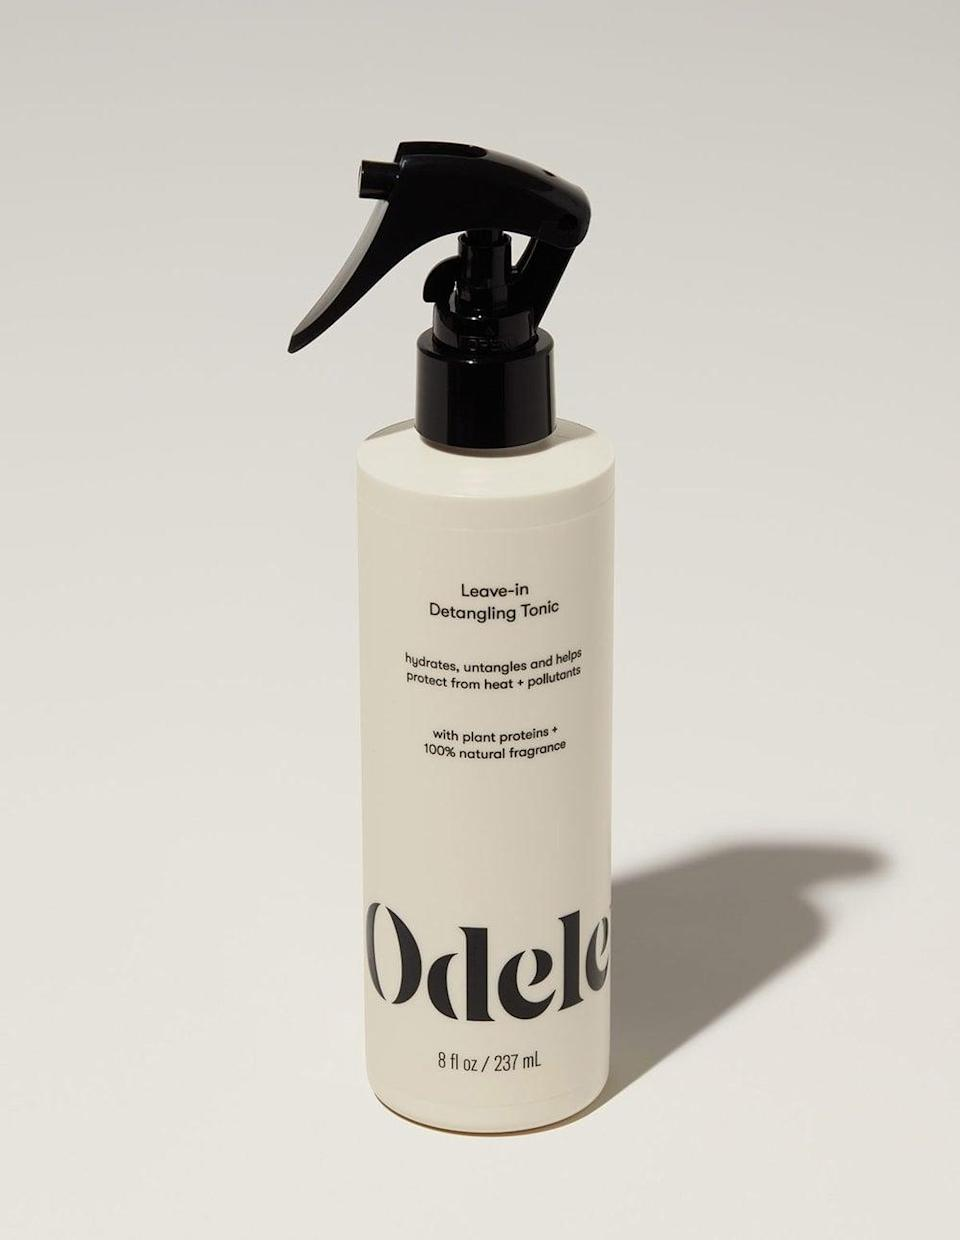 <p>The <span>Odele Leave-in Detangling Tonic</span> ($15) has a fresh floral scent that is light and not overbearing. It reminds me of chamomile and jasmine. The Leave-in Detangling Tonic is vegan, clean, color-safe, and made with all hair types in mind. </p>